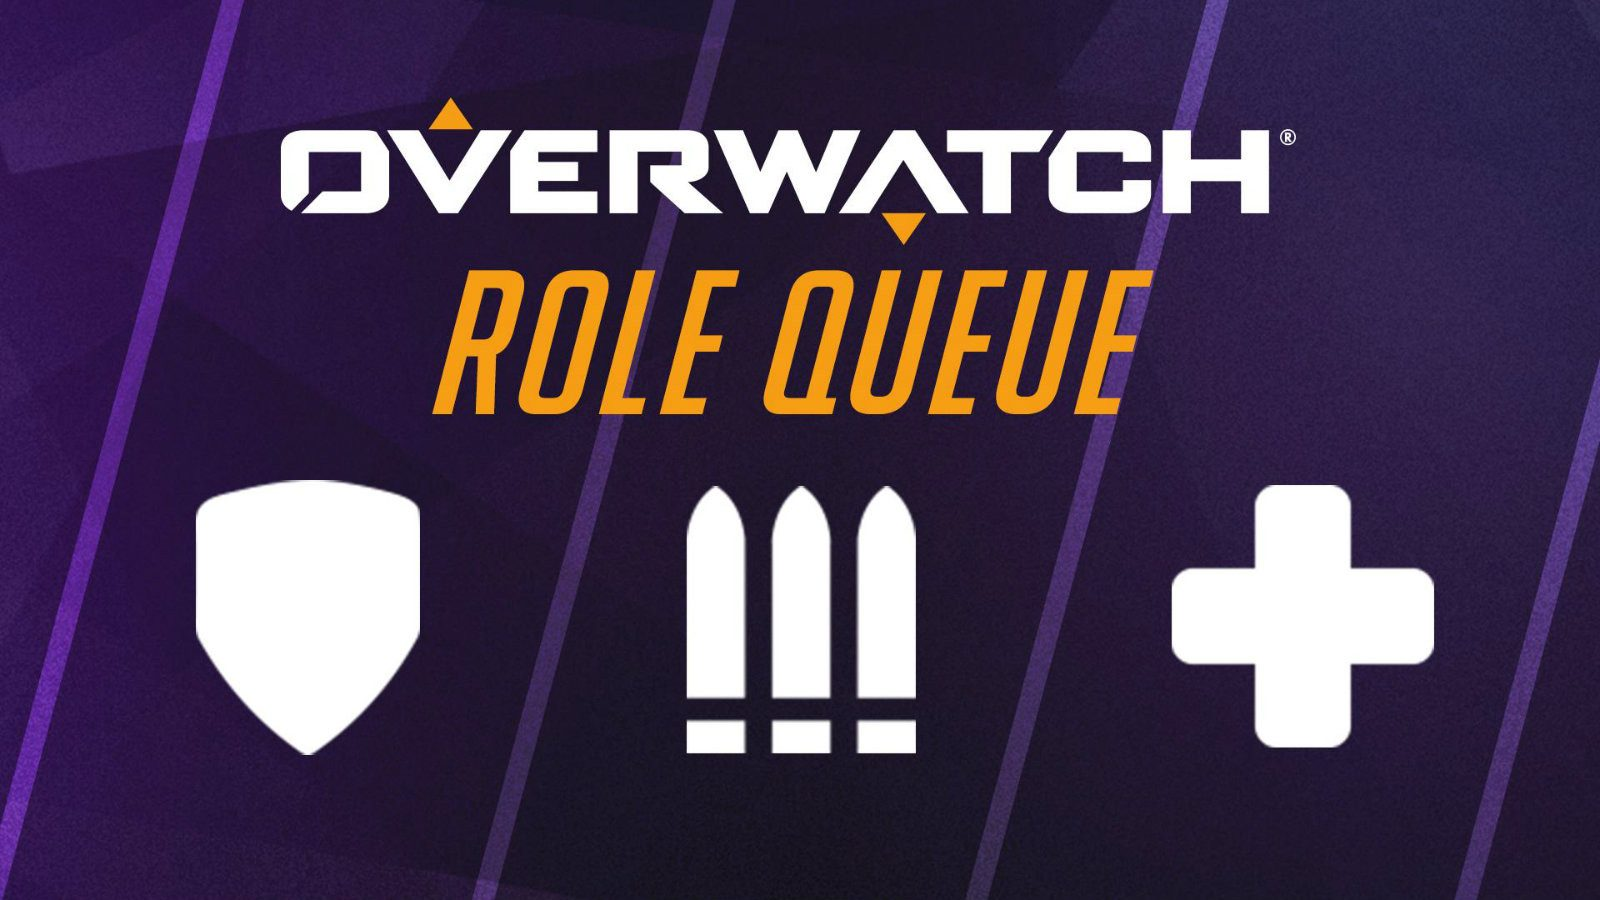 Role Queue Makes Me Excited To Play Overwatch Again